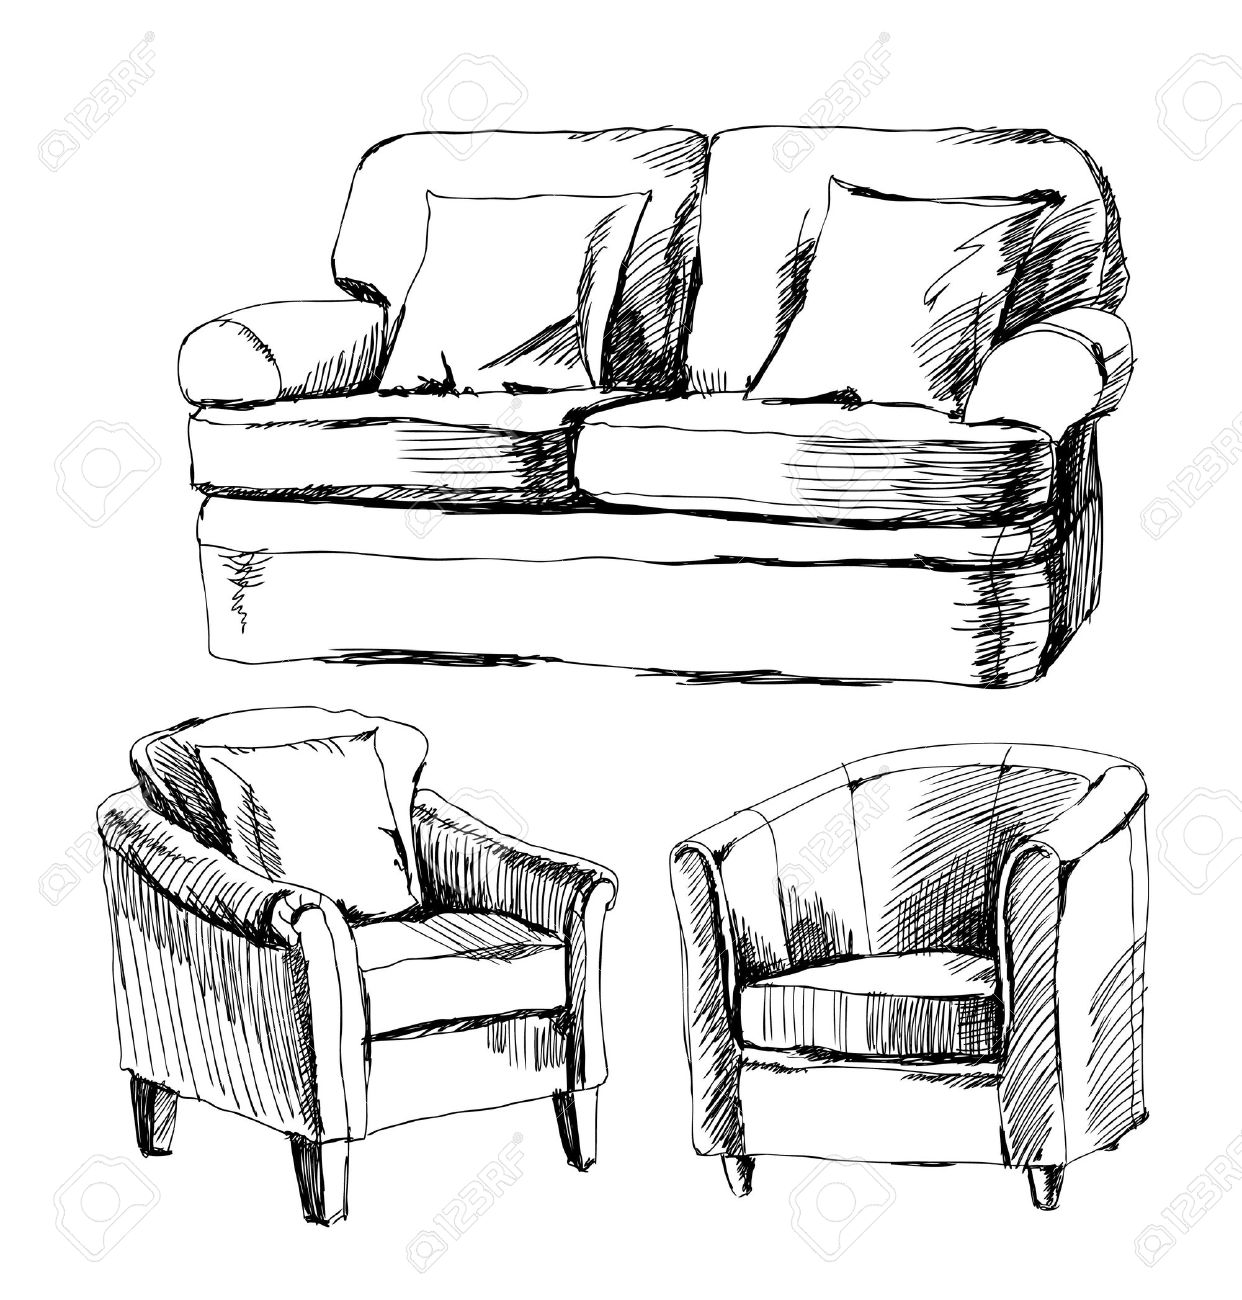 Modern furniture sketches chair sketches - Modern Couch Doodle Of Furniture